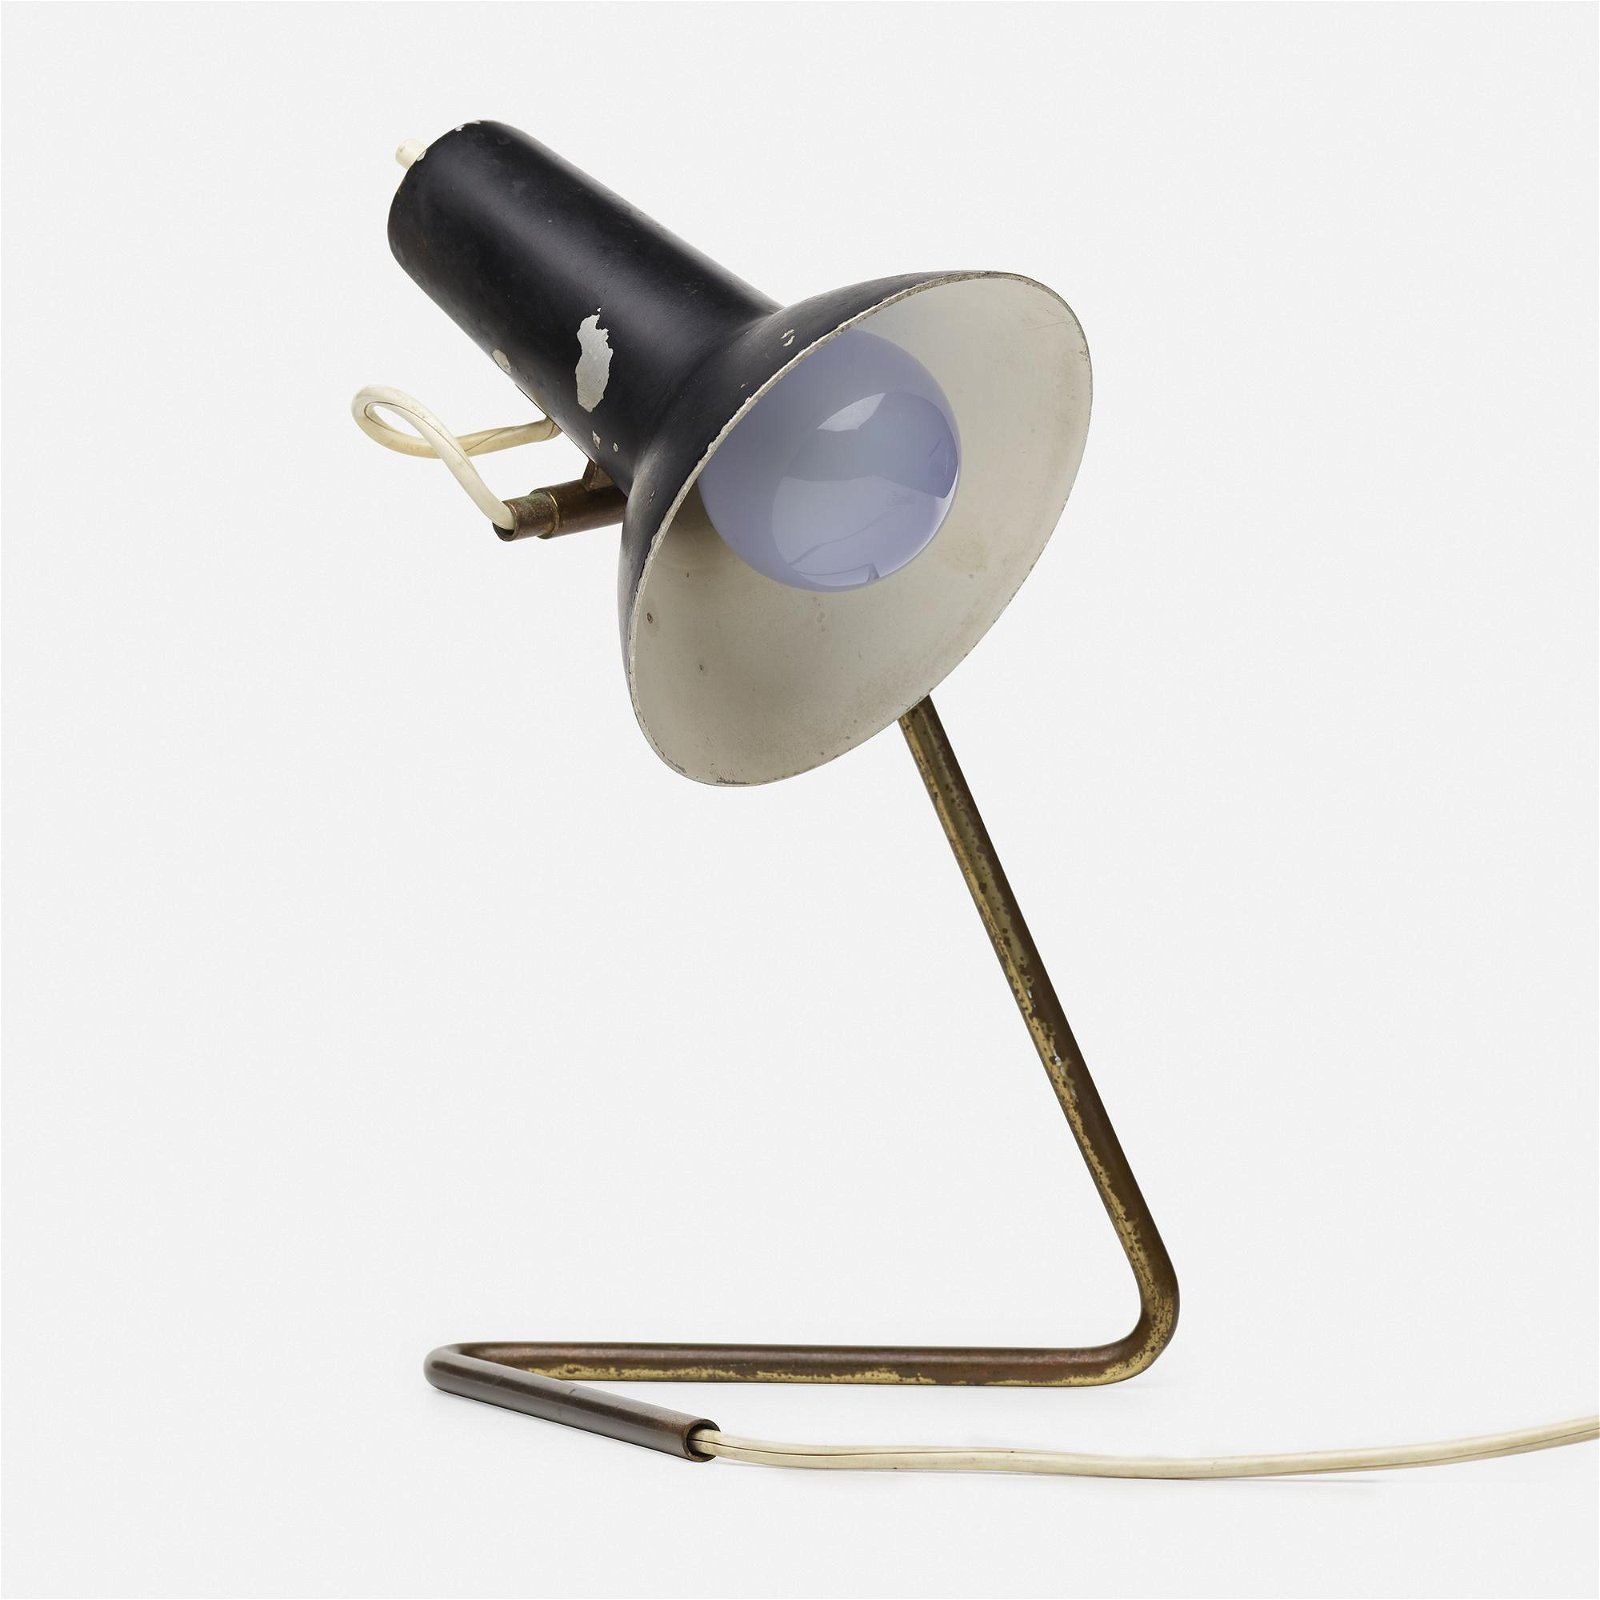 Gino Sarfatti, table lamp, model 551